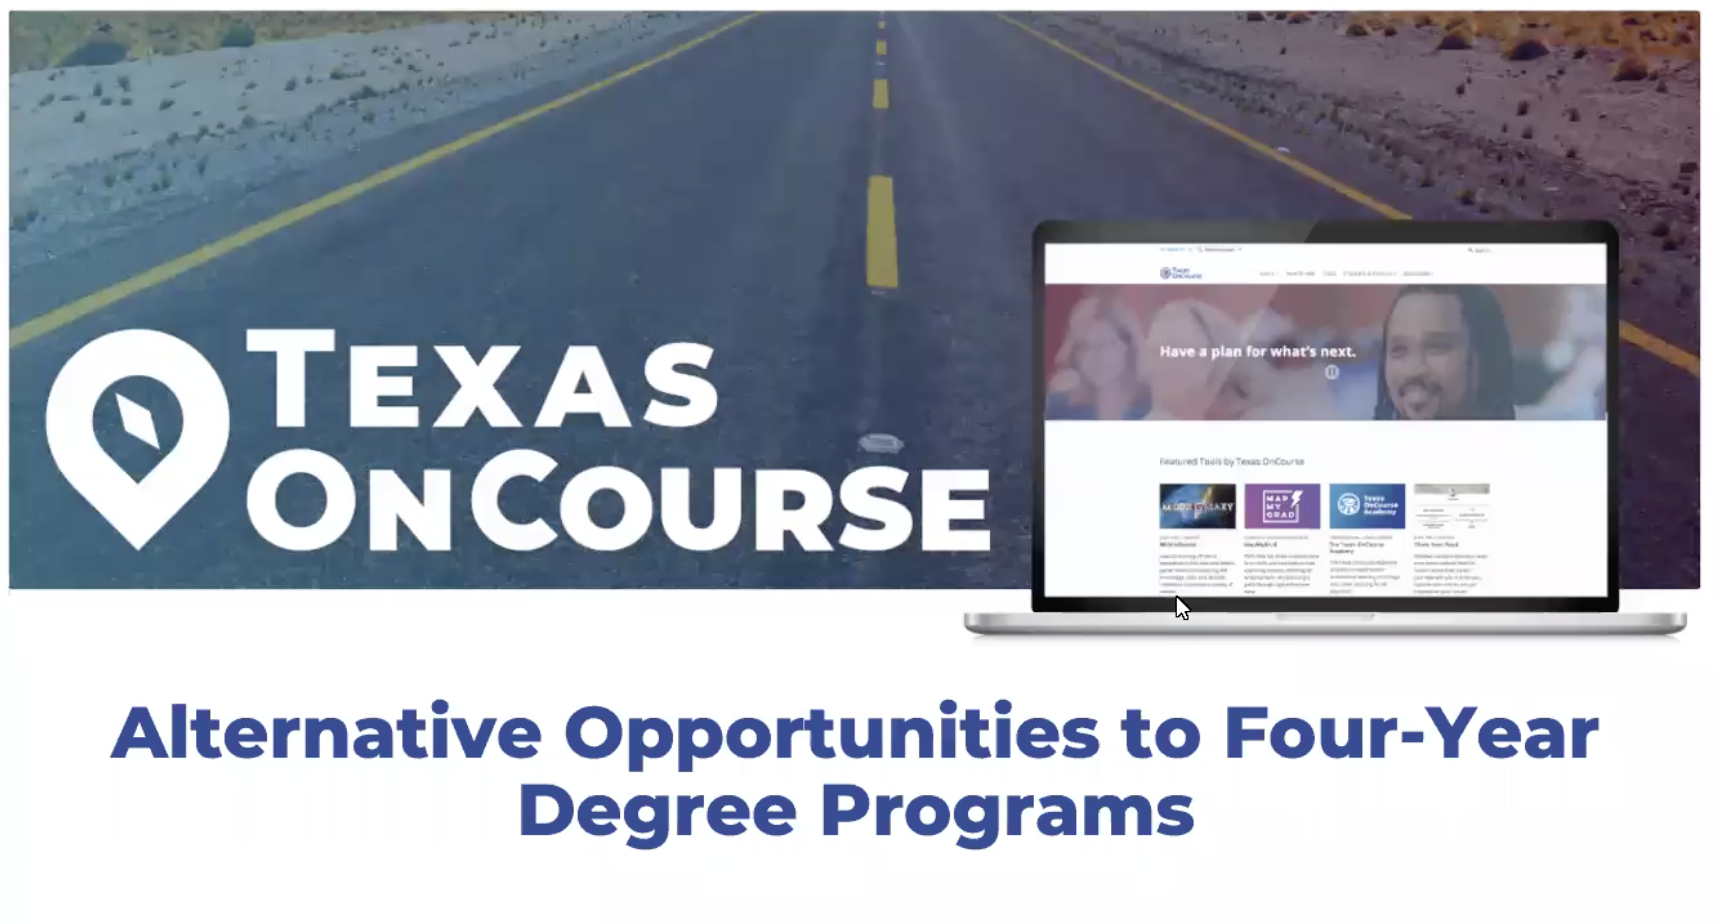 Alternative Opportunities to Four-Year Degree Programs